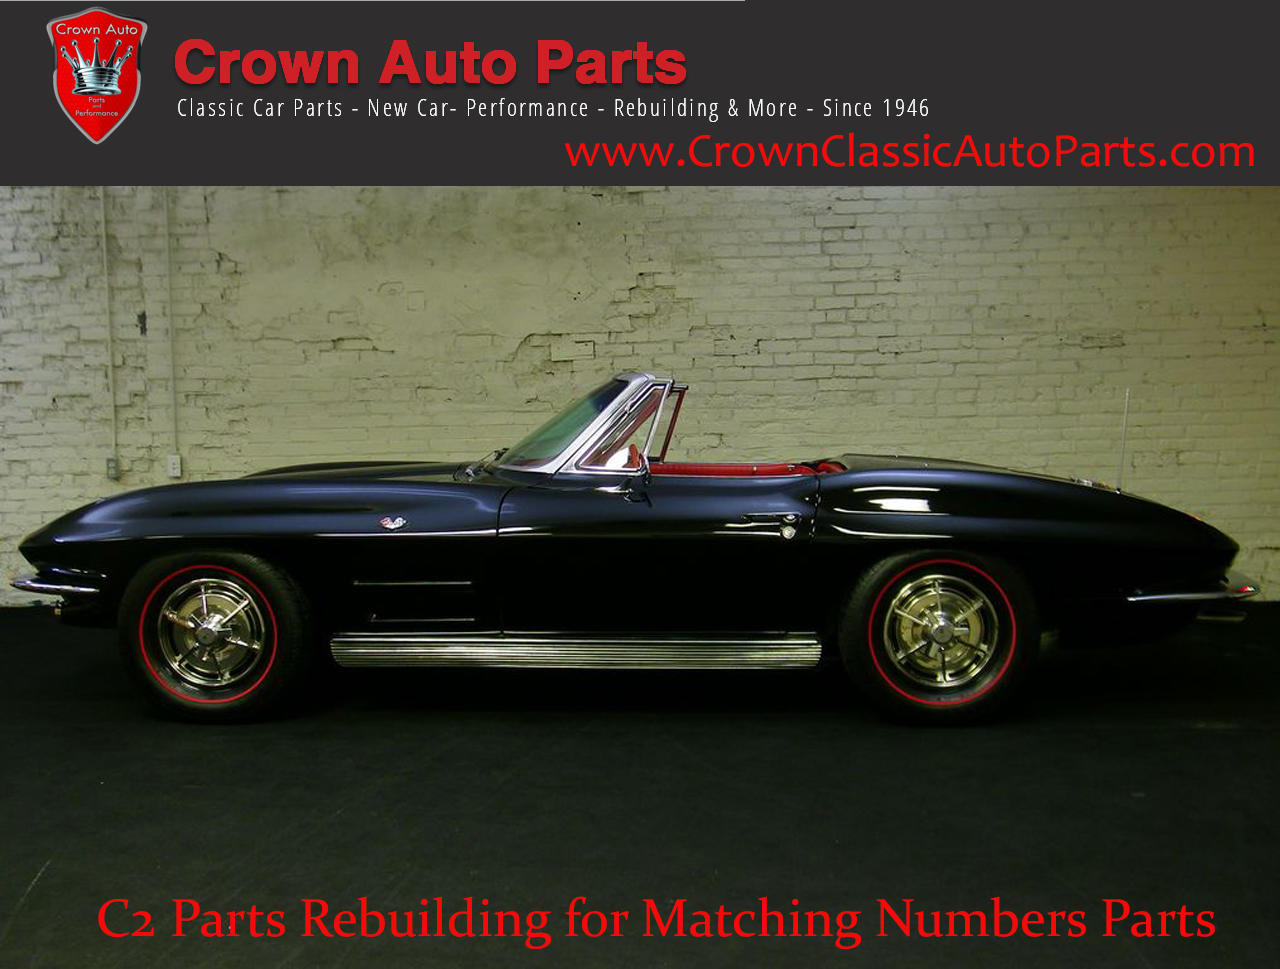 Crown Auto Parts & Rebuilding image 15